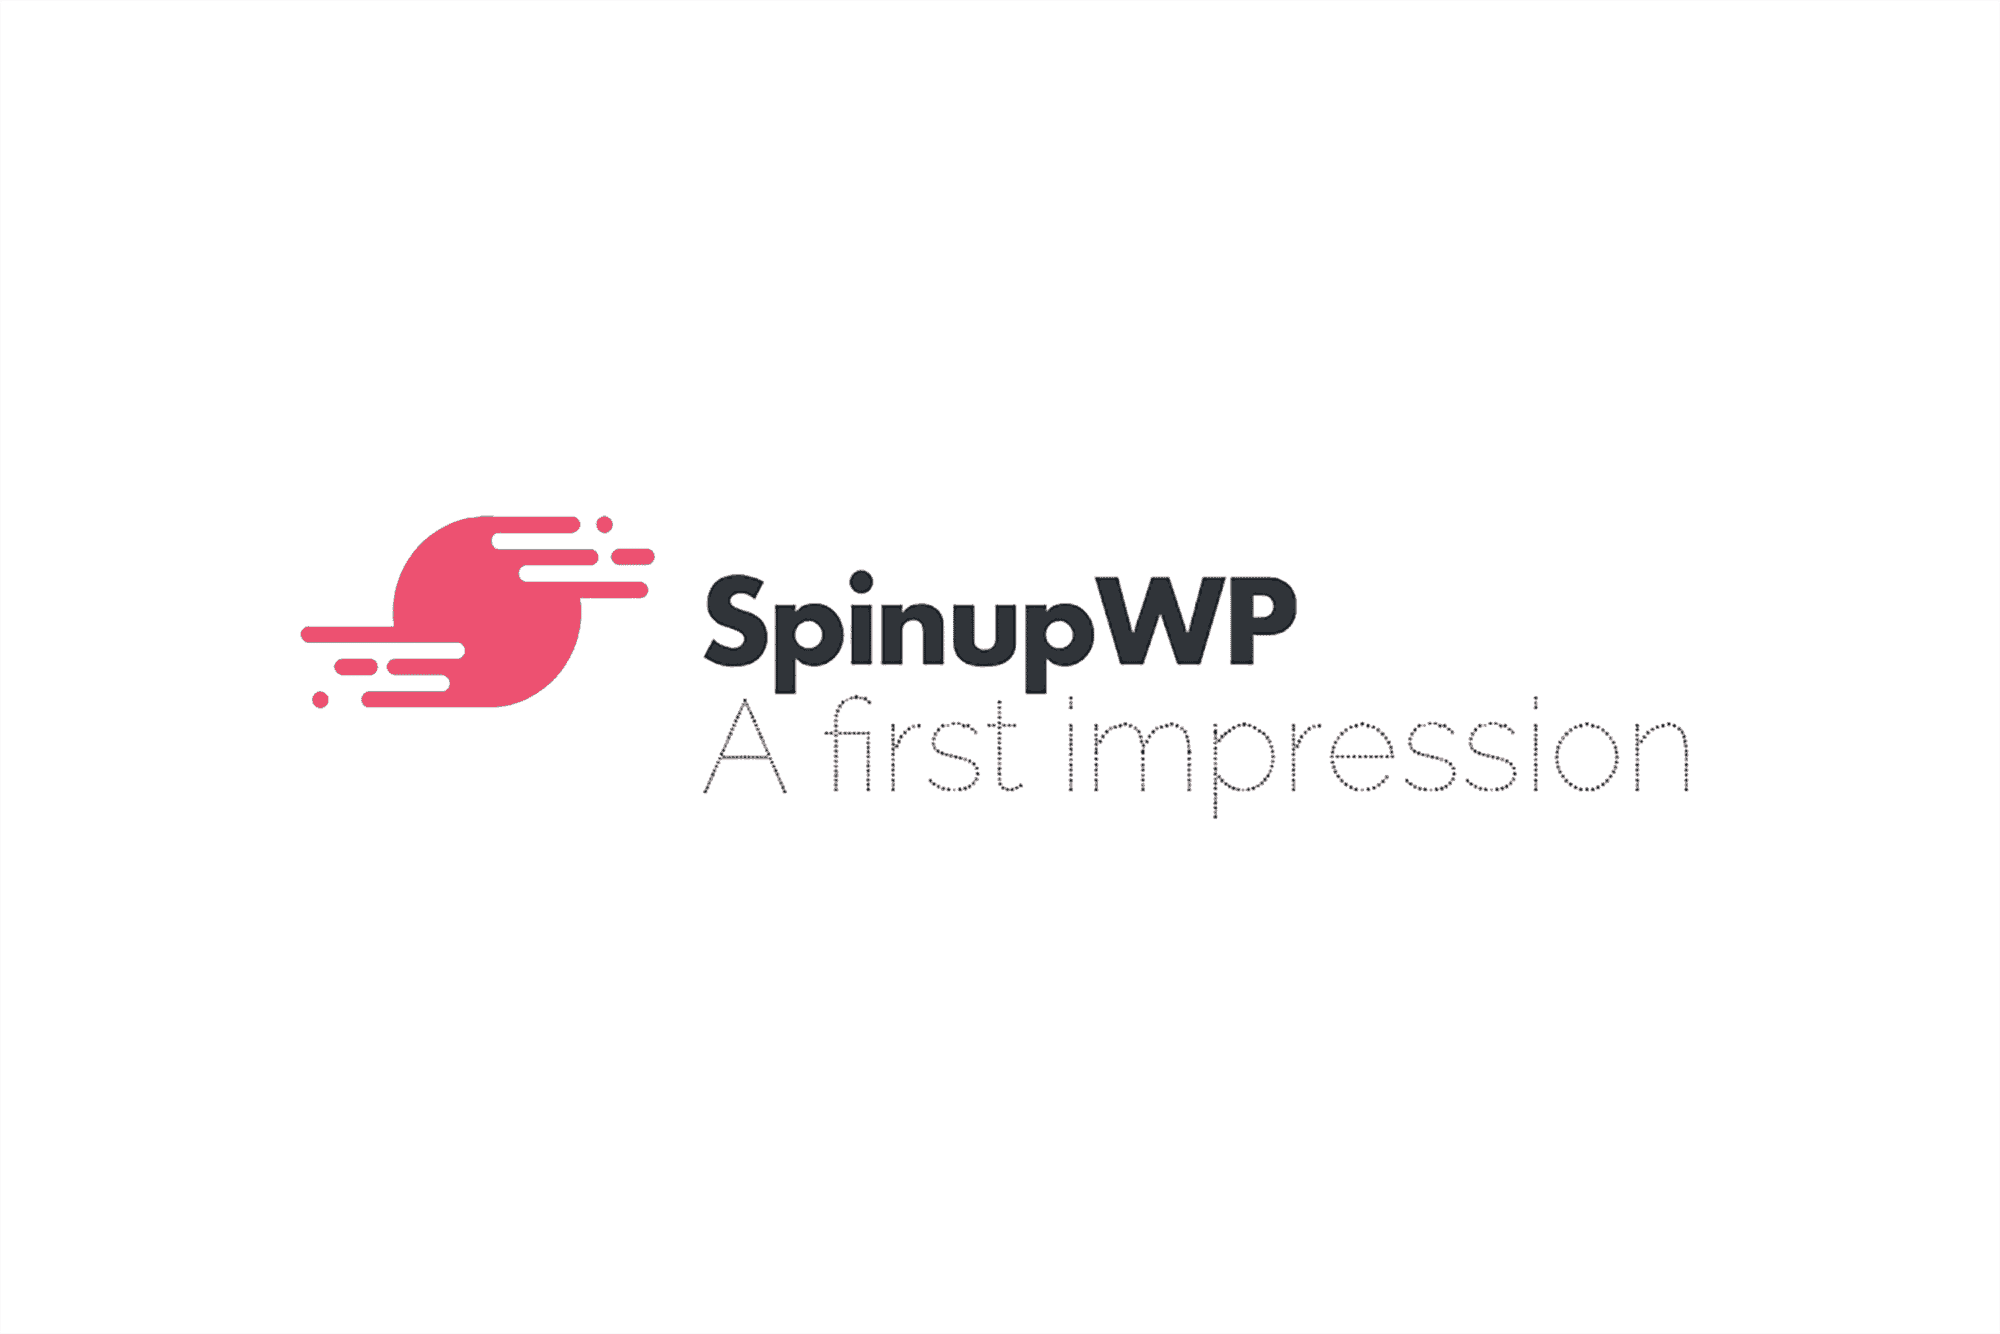 SpinupWP: A first impression